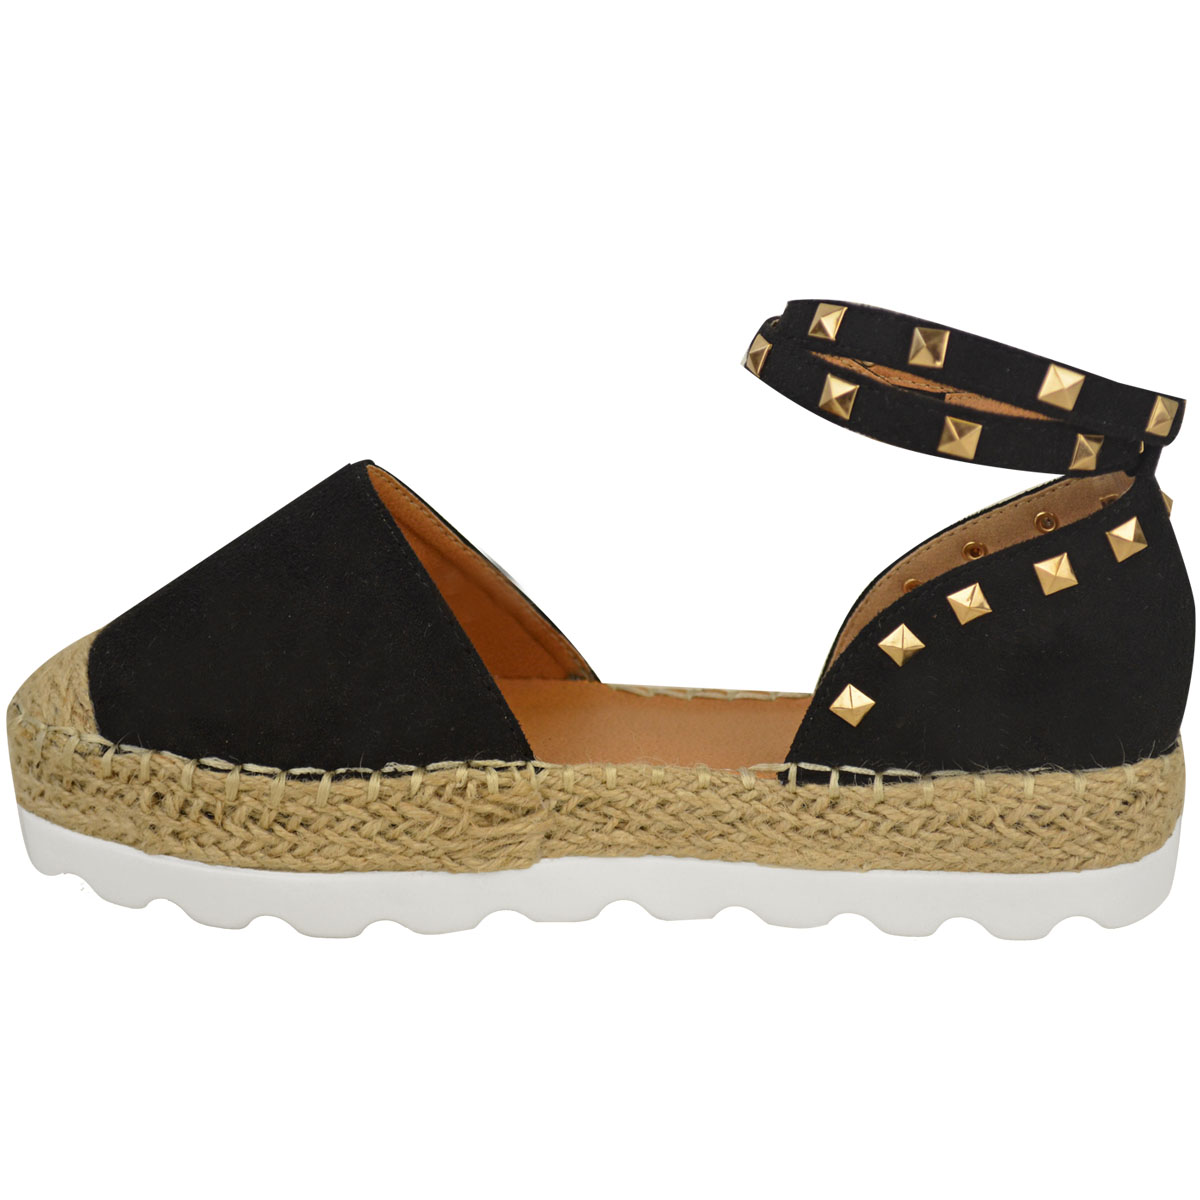 Womens-Ladies-Espadrilles-Flat-Pom-Pom-Sandals-Slip-On-Strappy-Comfy-Size-Shoes thumbnail 8